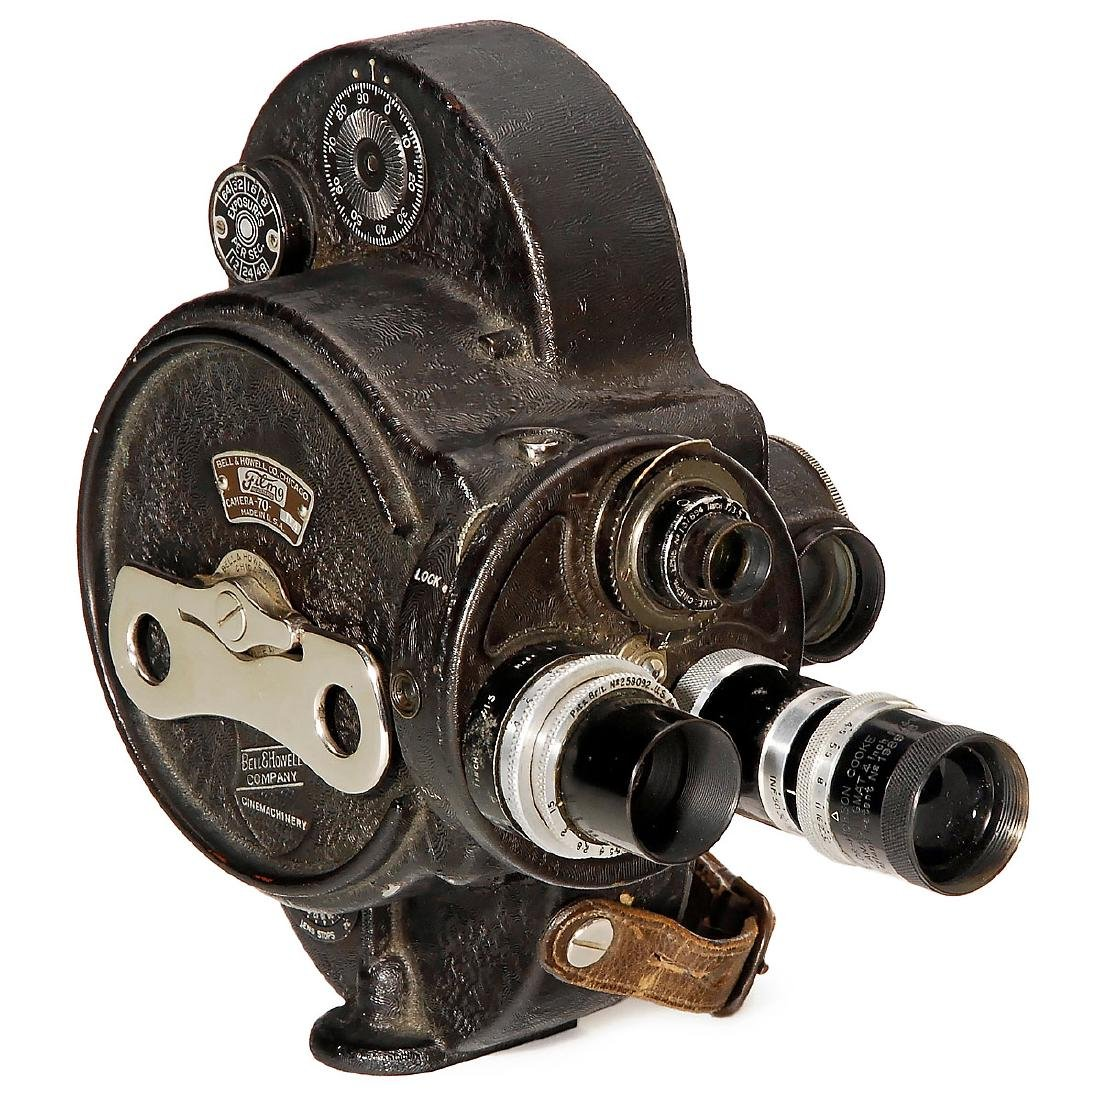 Bell & Howell Filmo 70DA 16 mm Movie Camera, c. 1940